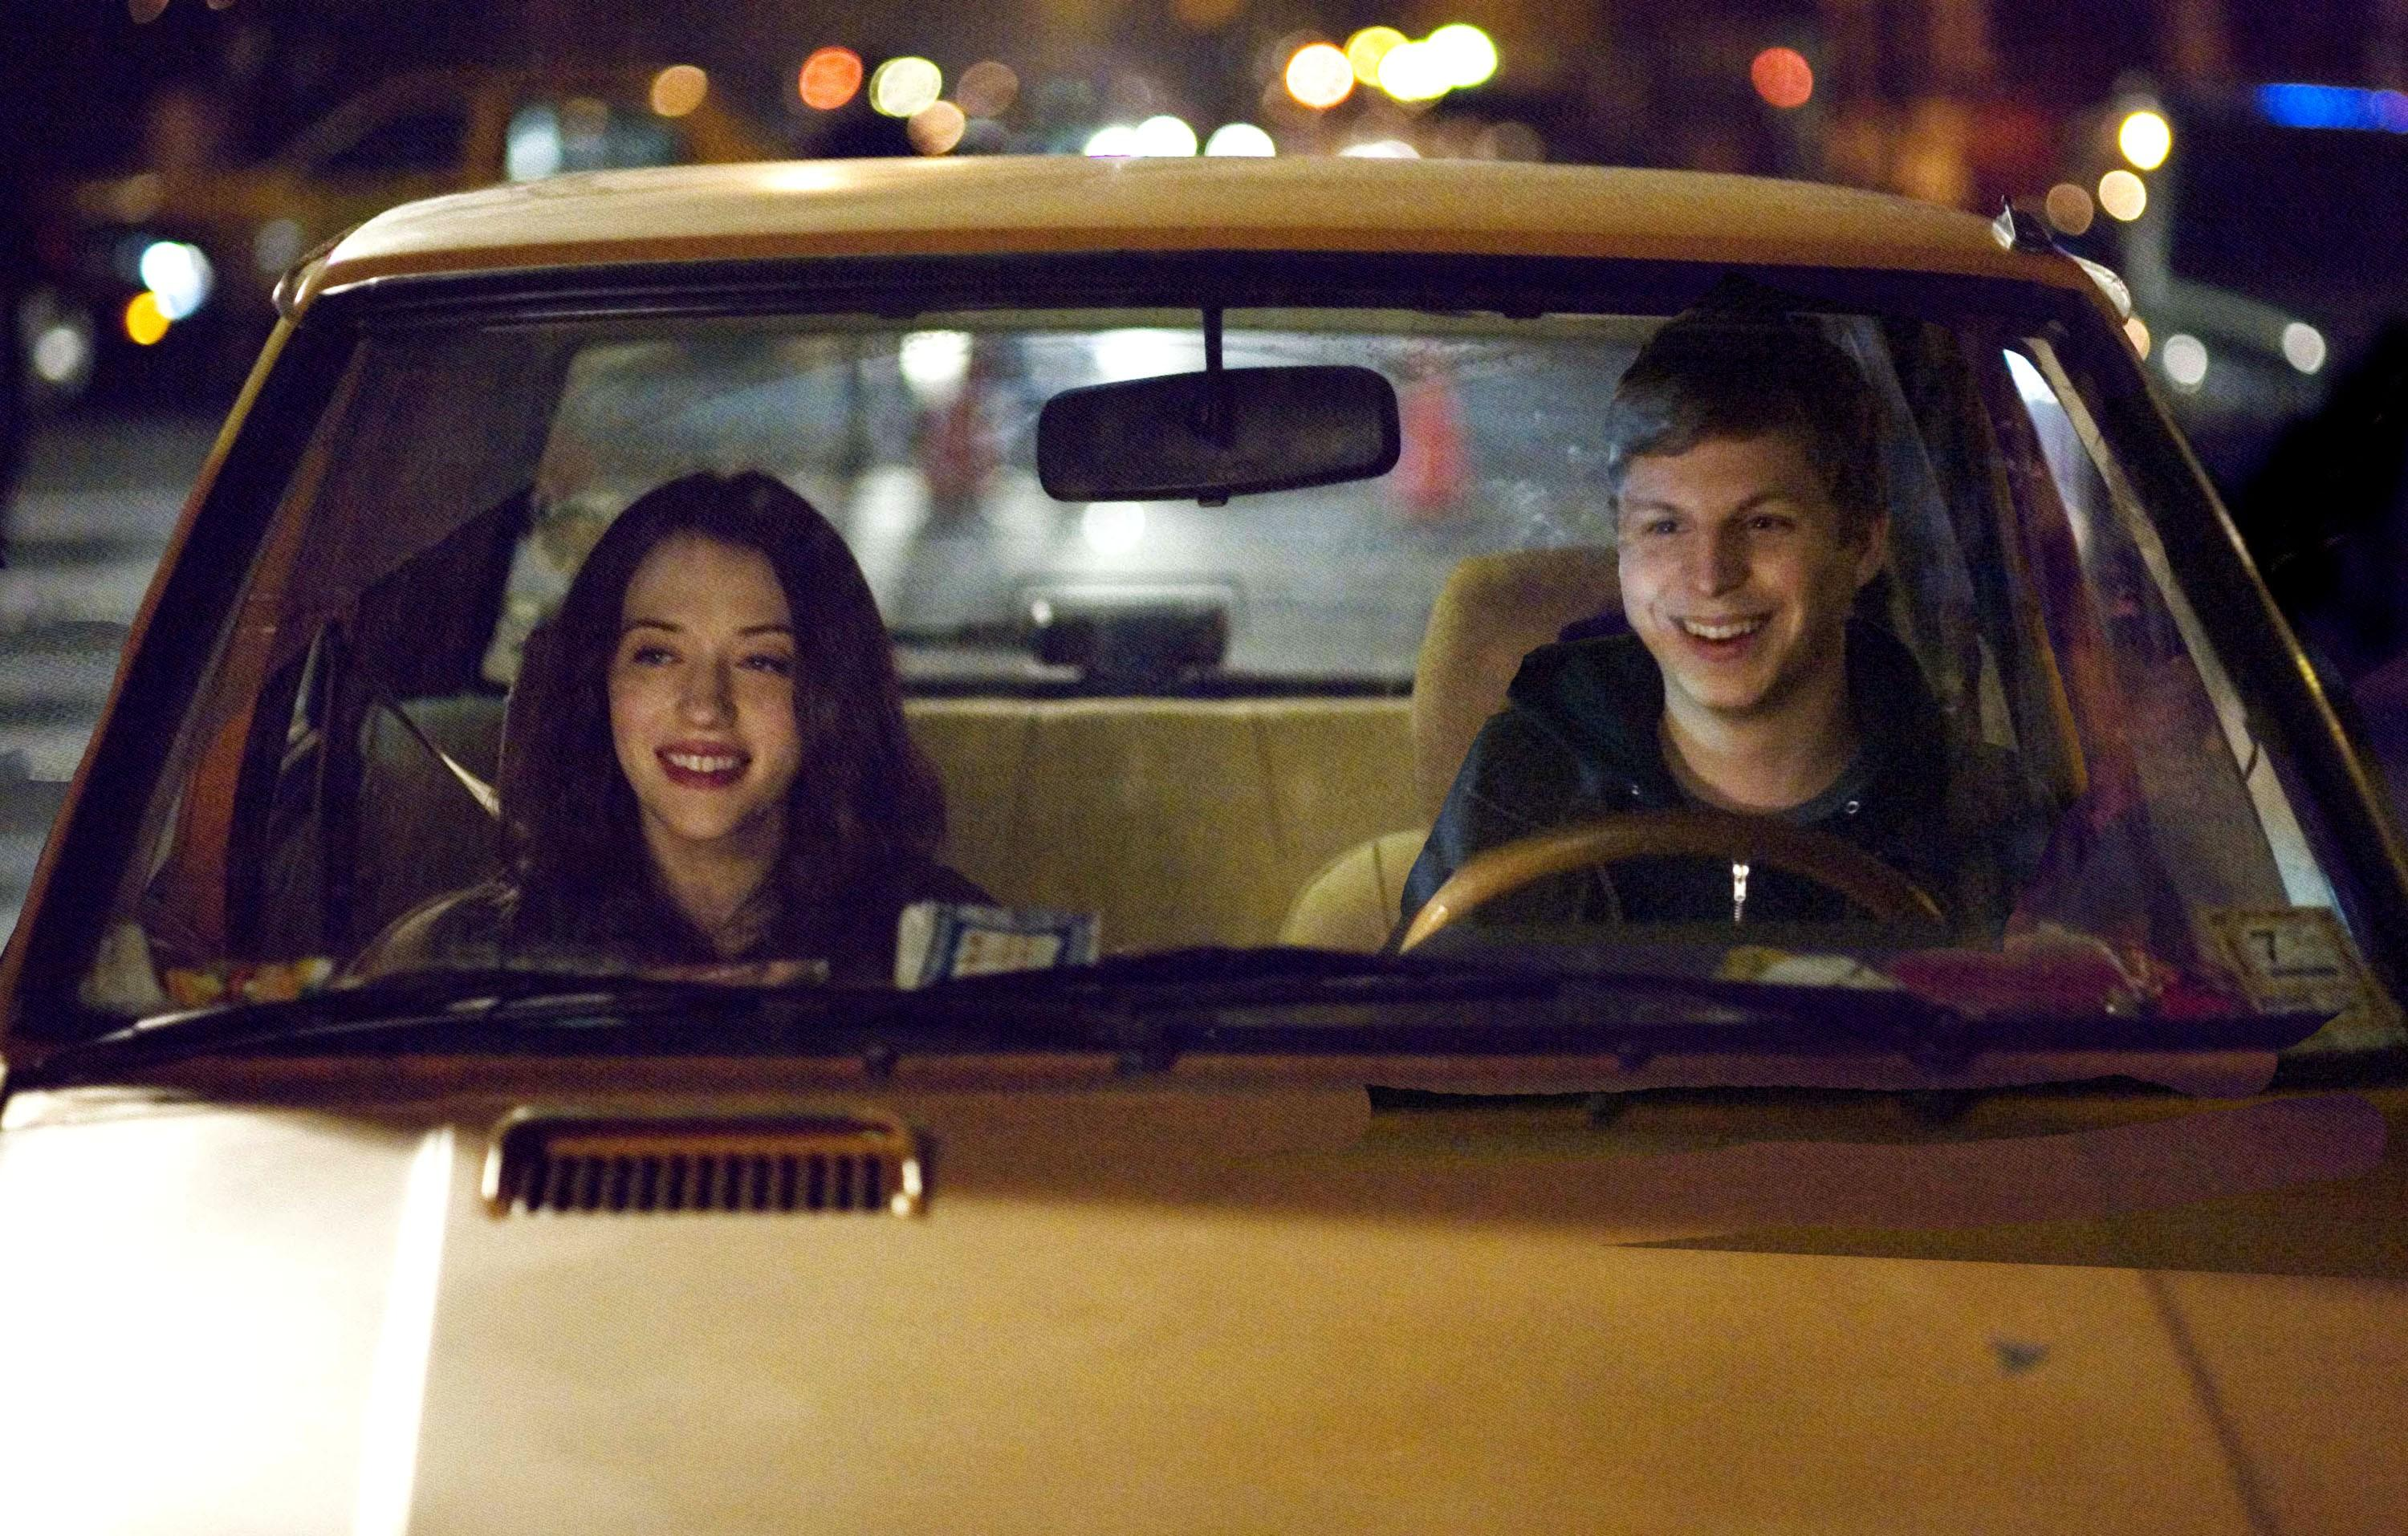 Nick And Norah's Infinite Playlist Backgrounds, Compatible - PC, Mobile, Gadgets| 3000x1914 px